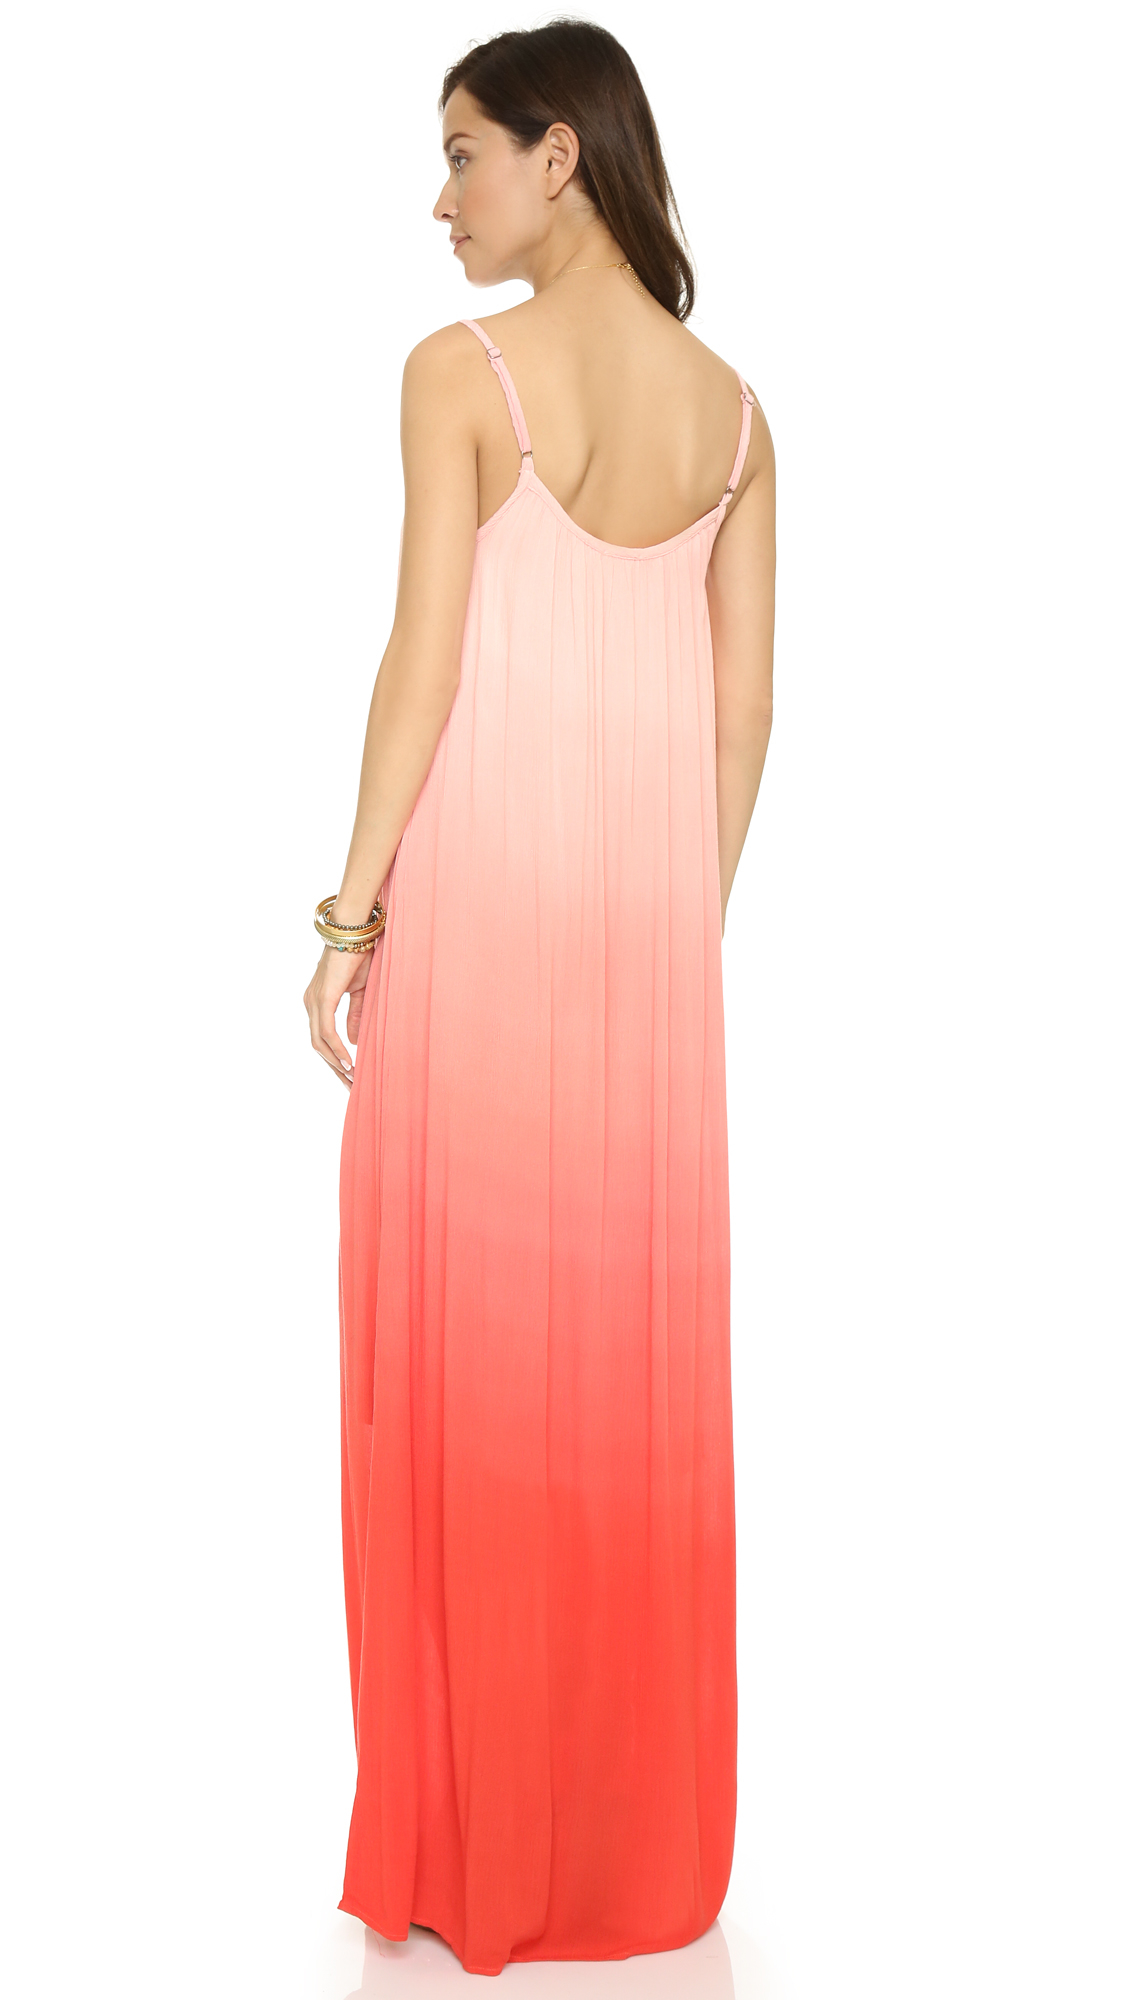 Poppy ombre jersey maxi dress